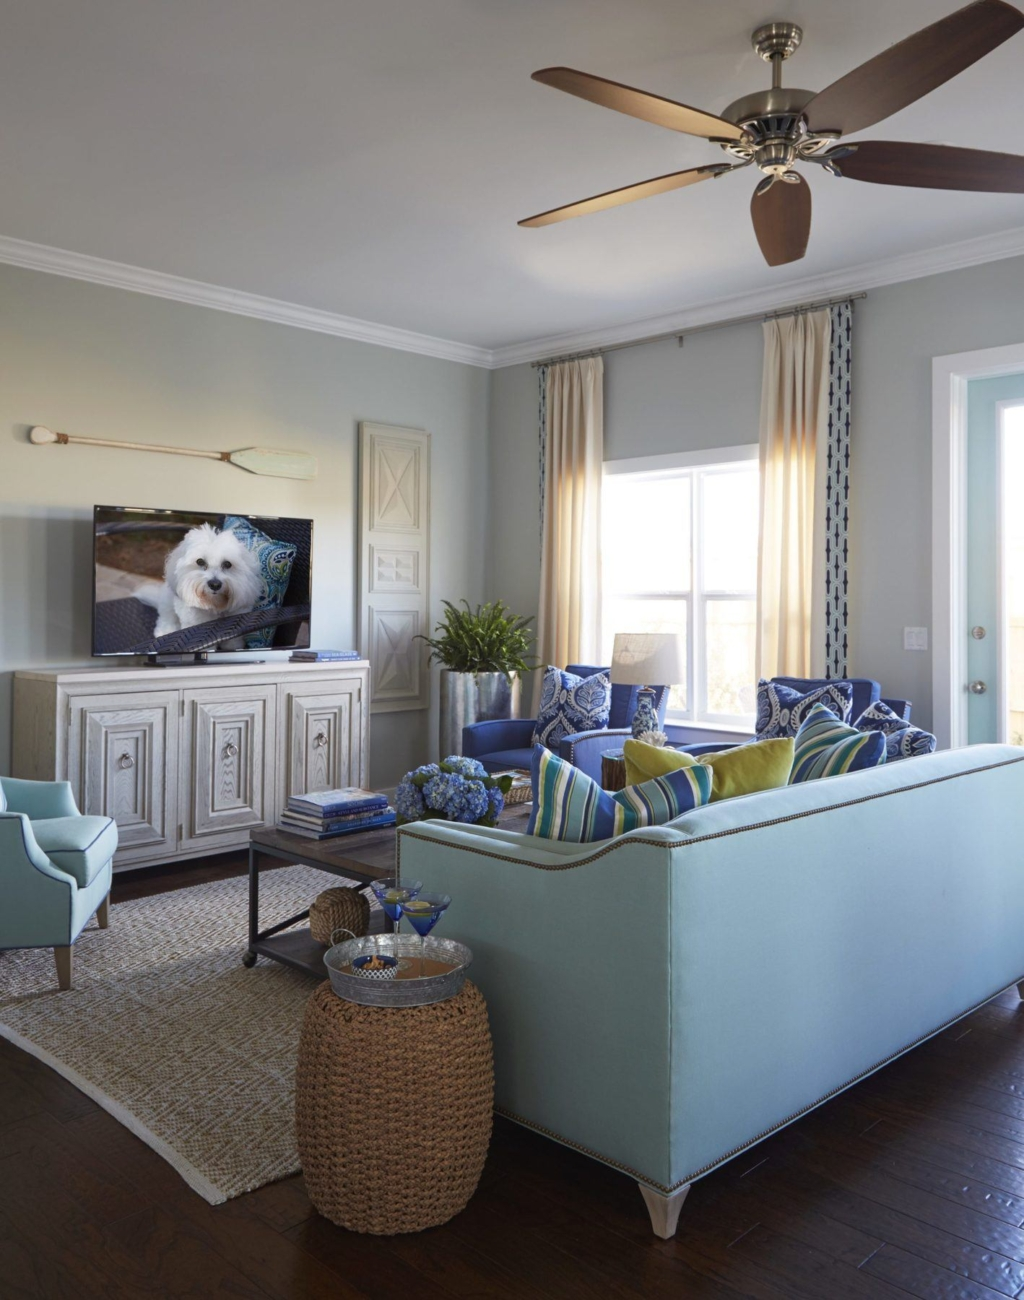 Kristin drohan collection house of turquoise for Kristin drohan interior design